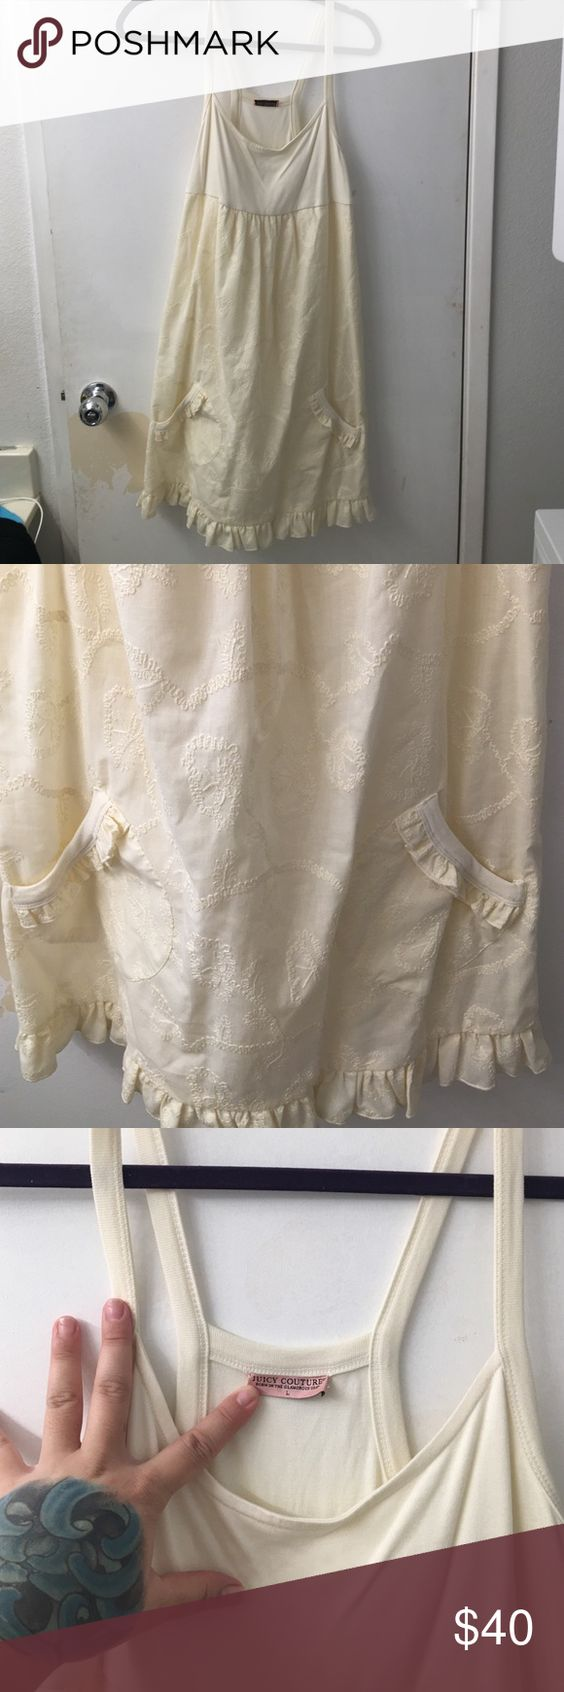 Large cream embroidered Juicy Couture Dress Worn once Large Juicy Couture cream embroidered dress Juicy Couture Dresses Midi